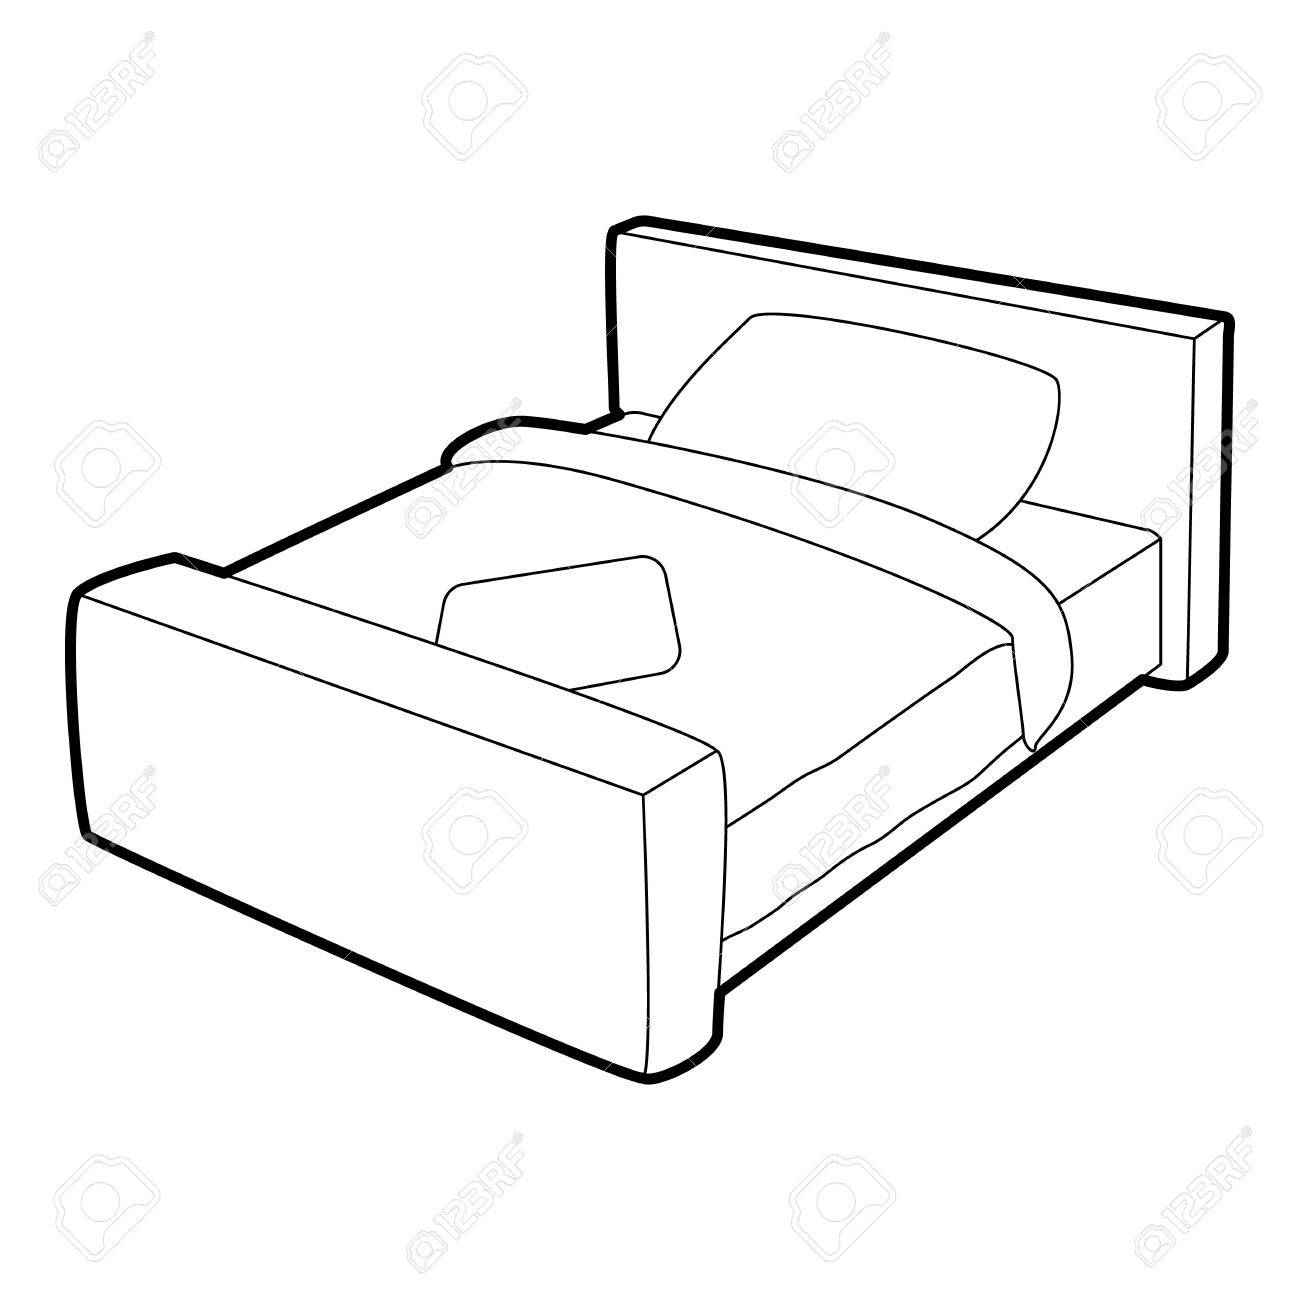 3d Bed Drawing At Getdrawings